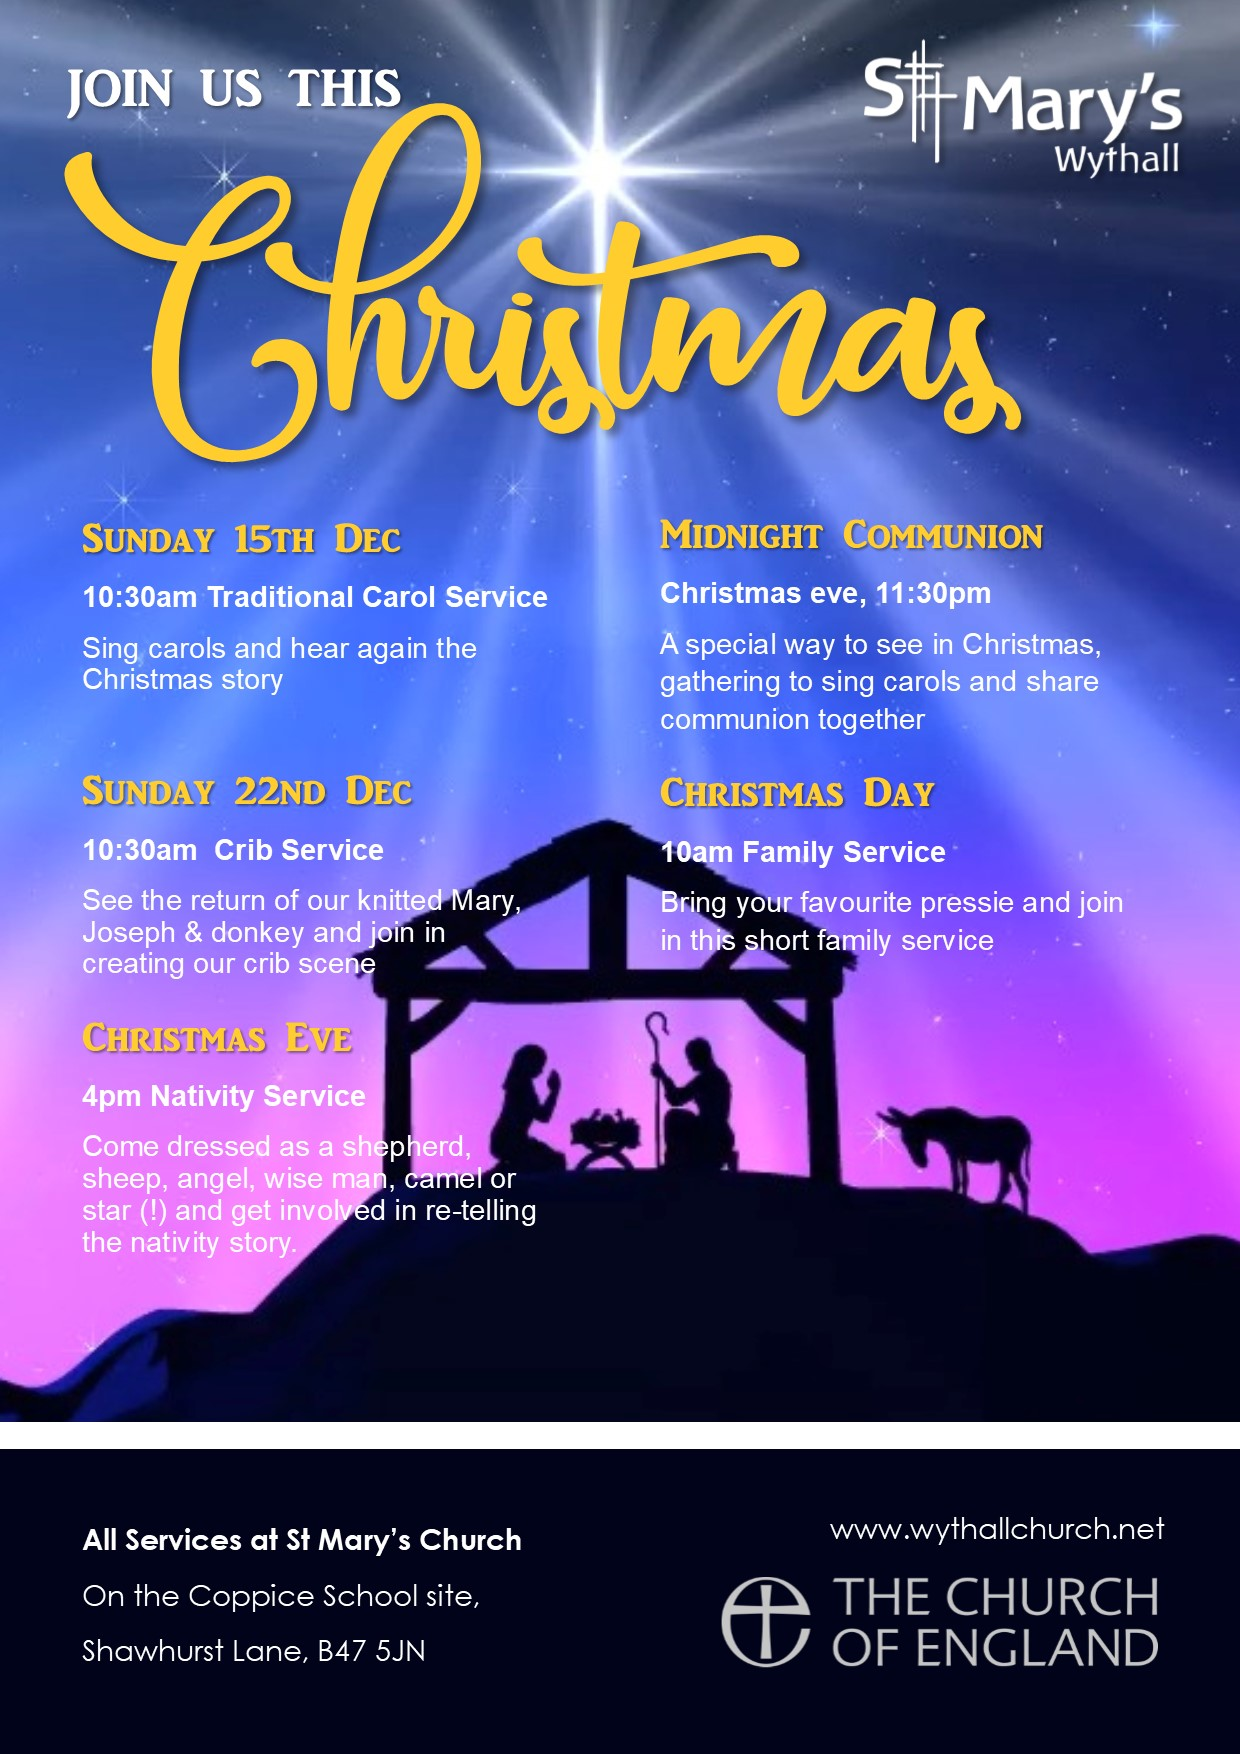 Christmas Eve Nativity Service @ Hollywood | United Kingdom